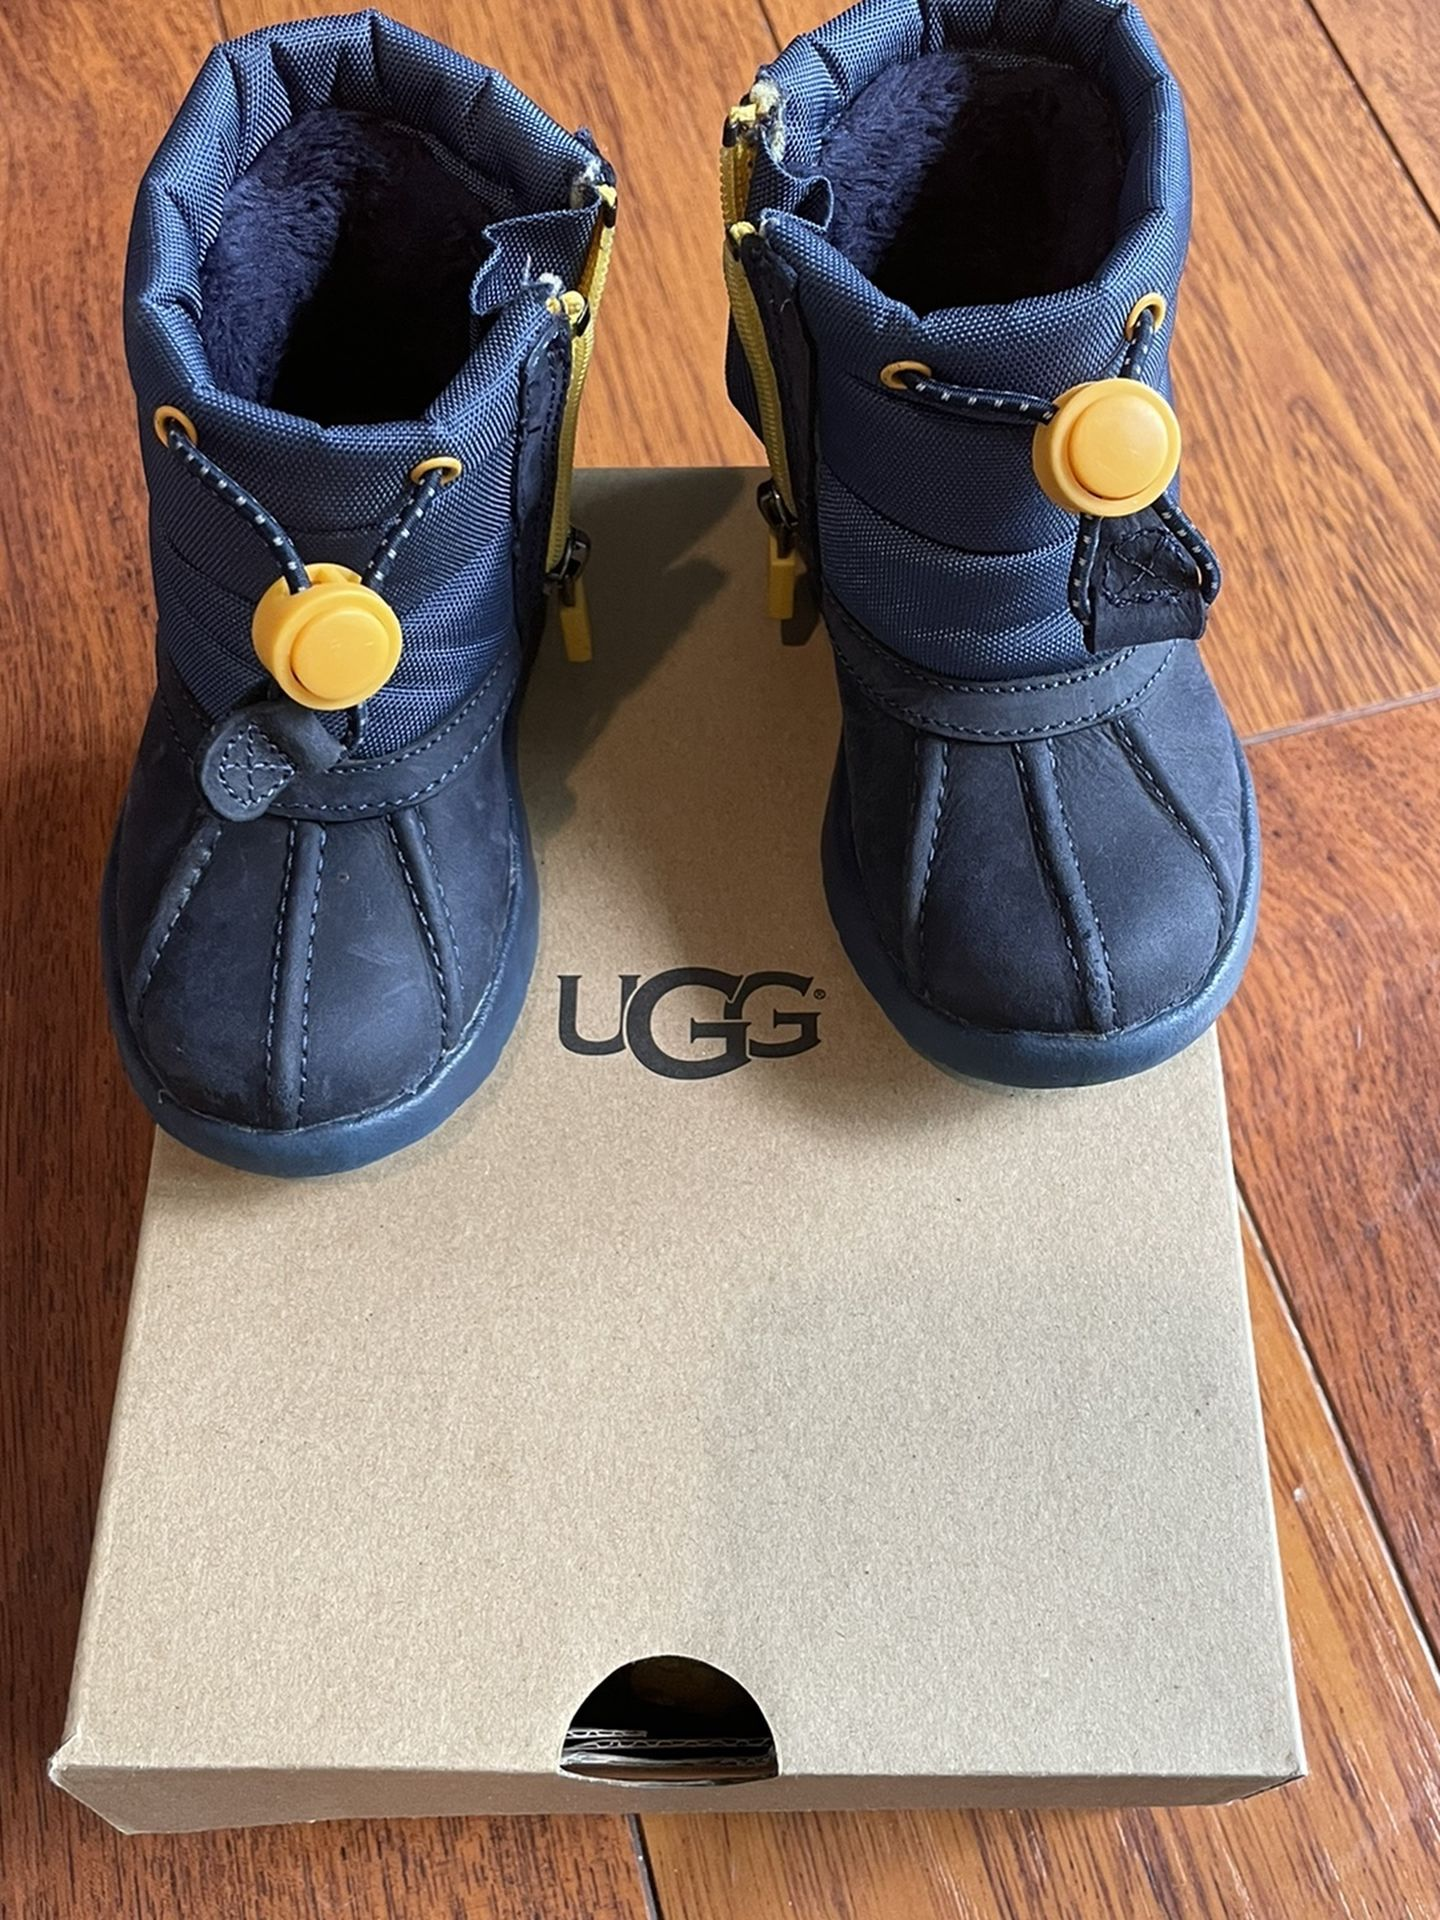 Uggs Boots Toddler Boys Size 6